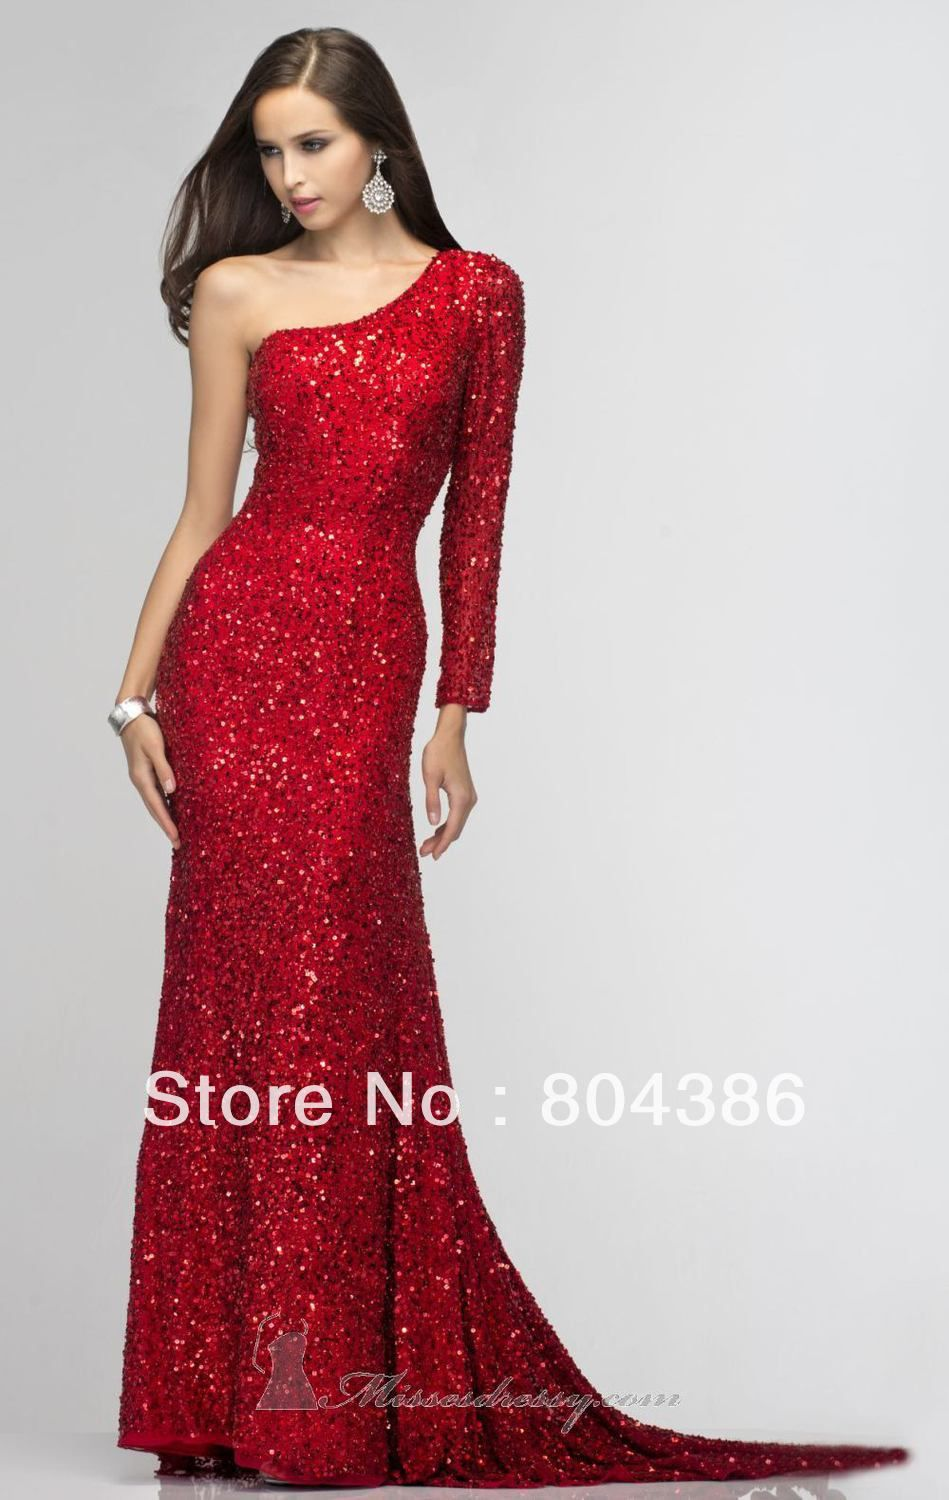 10  images about sis16dresses on Pinterest  Long prom dresses ...